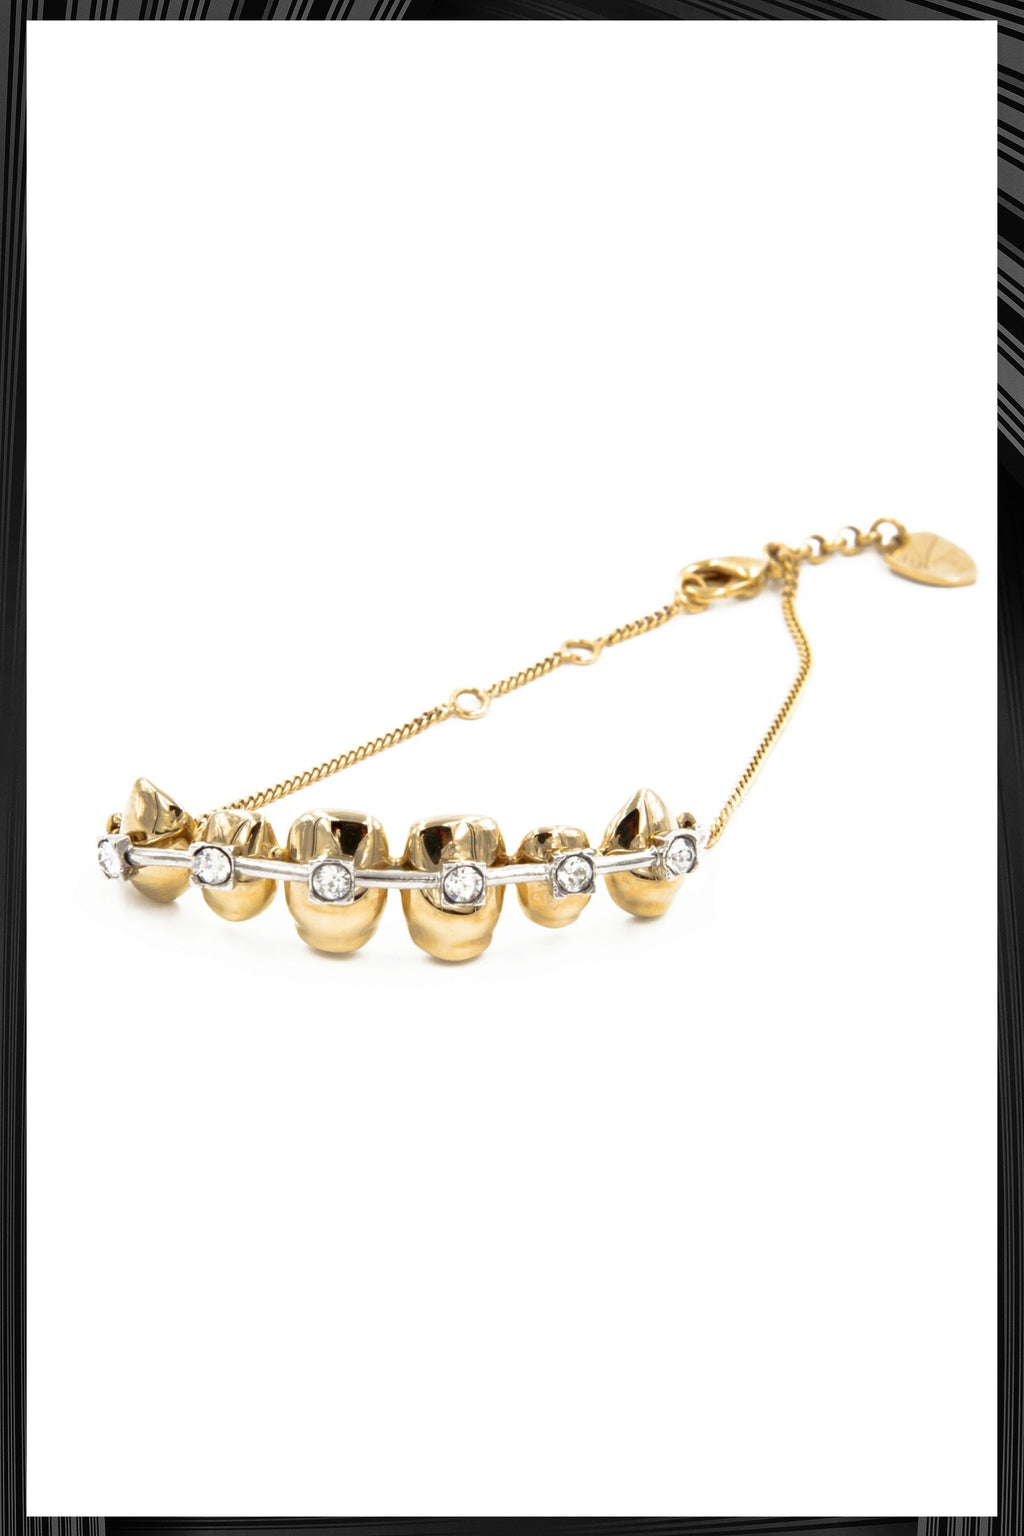 Gold Brackets Bracelet | Free Delivery - Quick Shipping